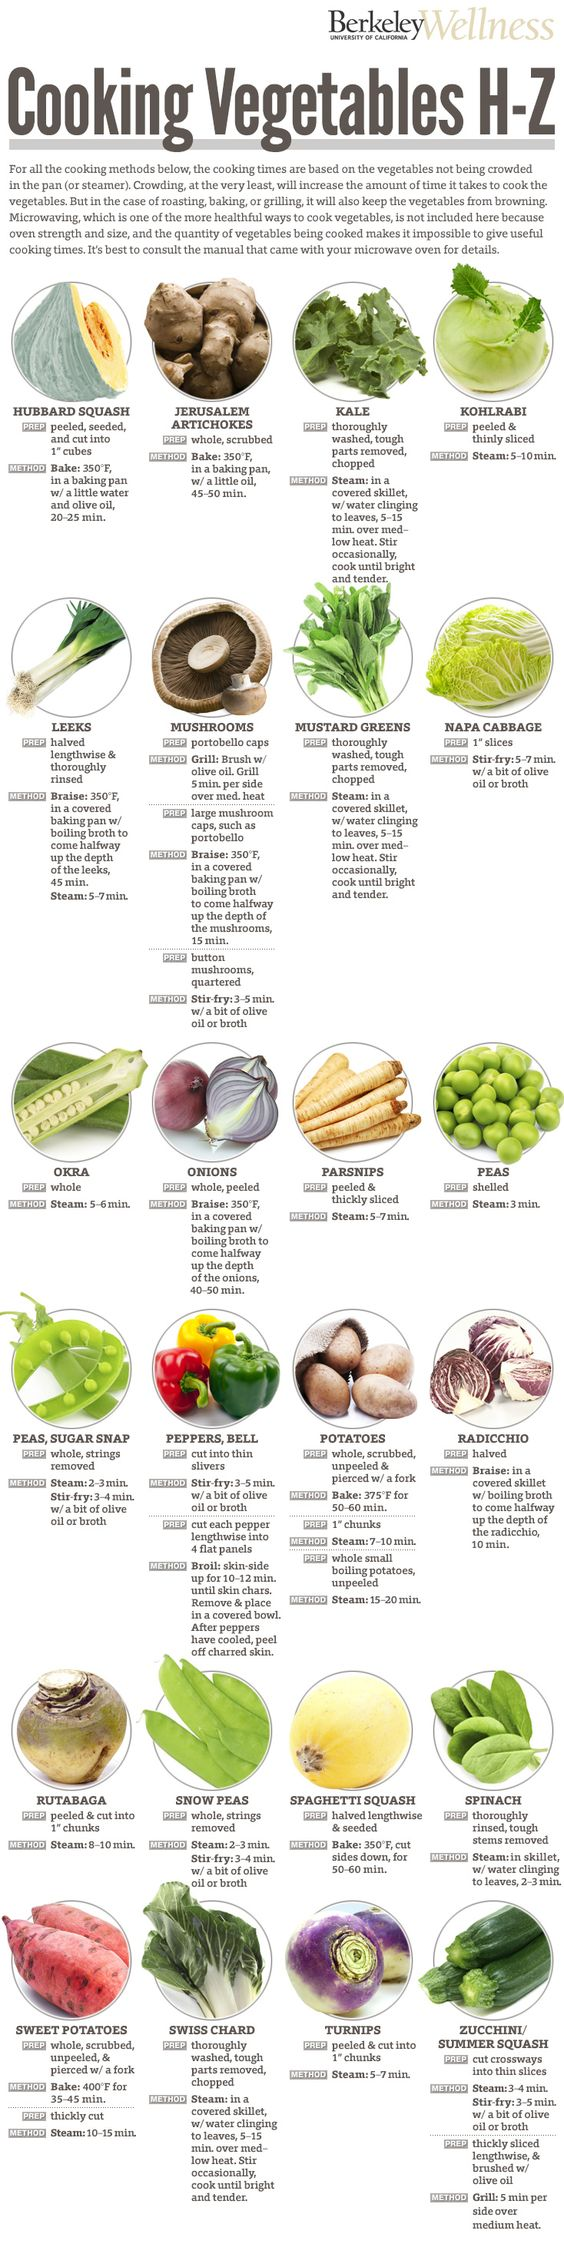 PART 2: How to Cook Vegetables the healthy way from Jerusalem Artichokes to Zucchini by berkelywellness #Infographic #Cooking_Vegetables